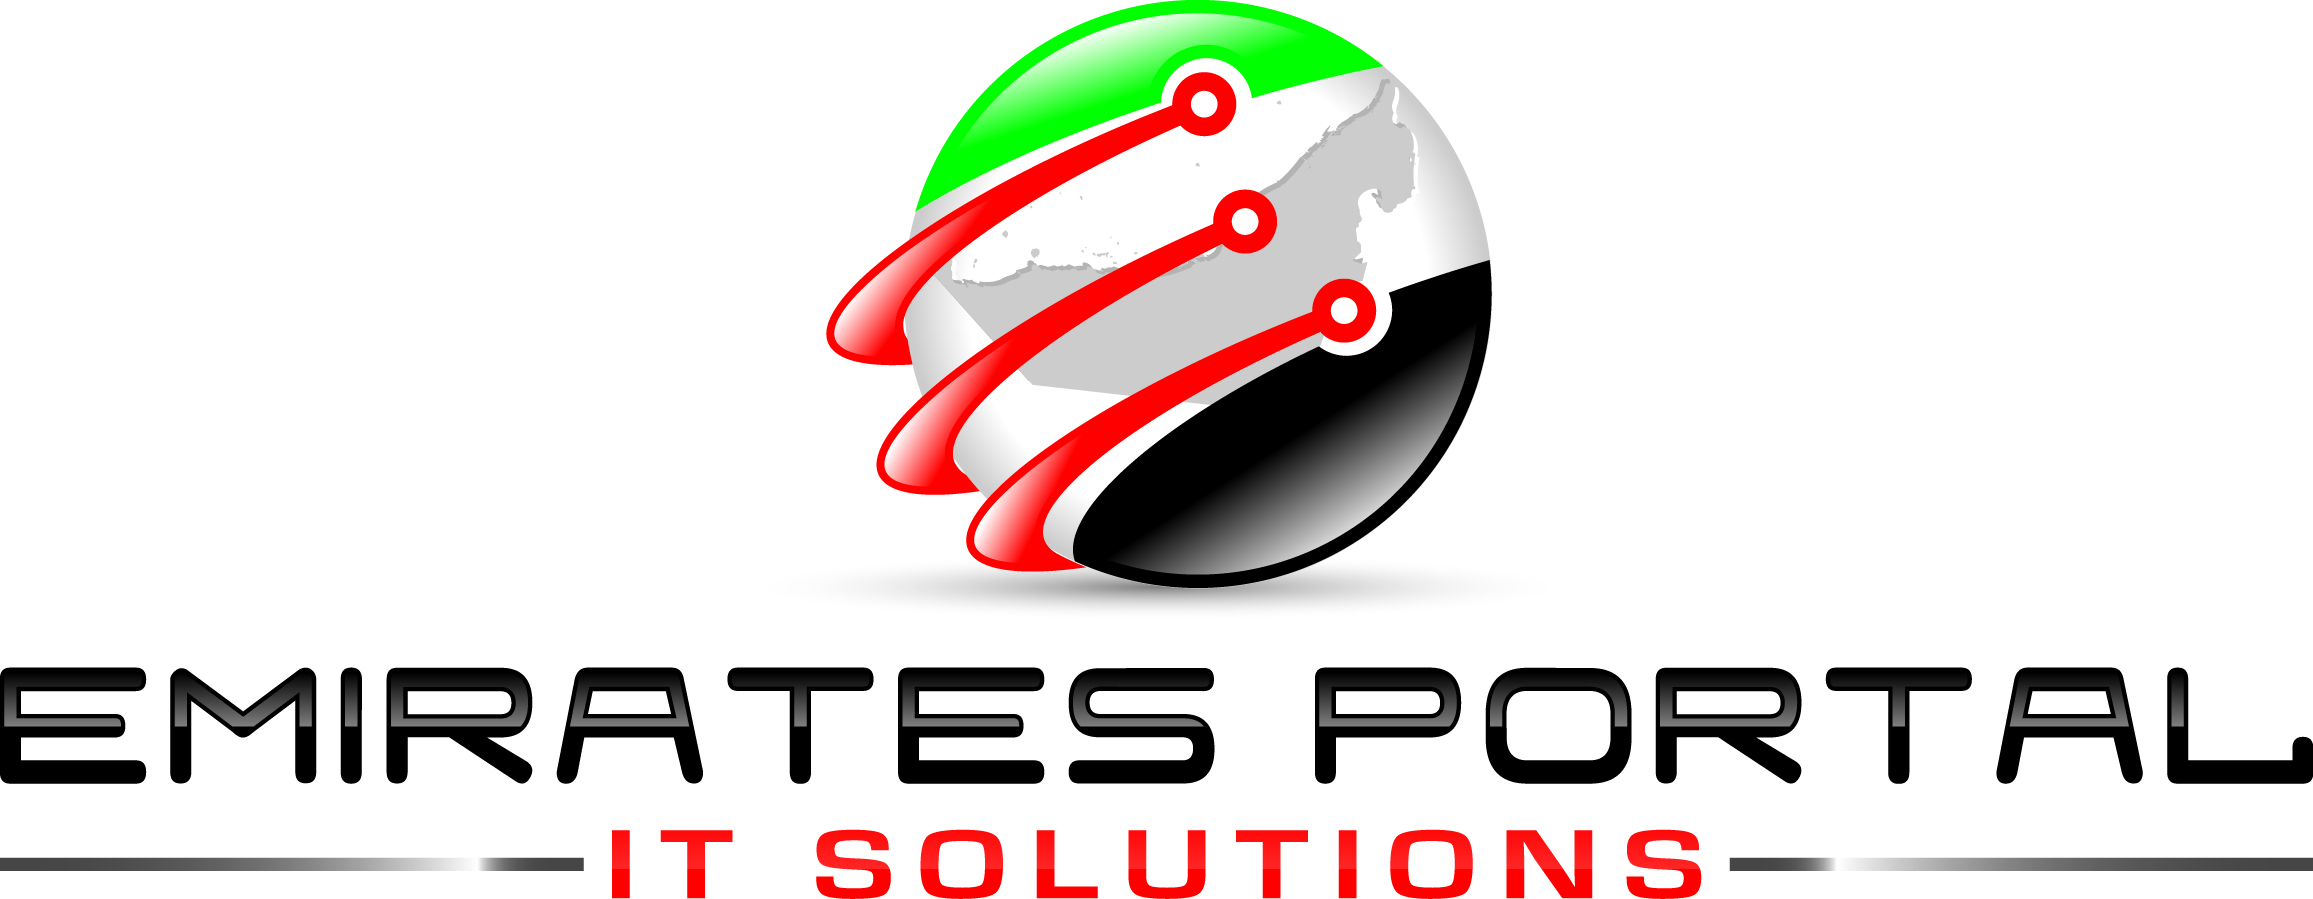 Emirates Portal IT Solutions